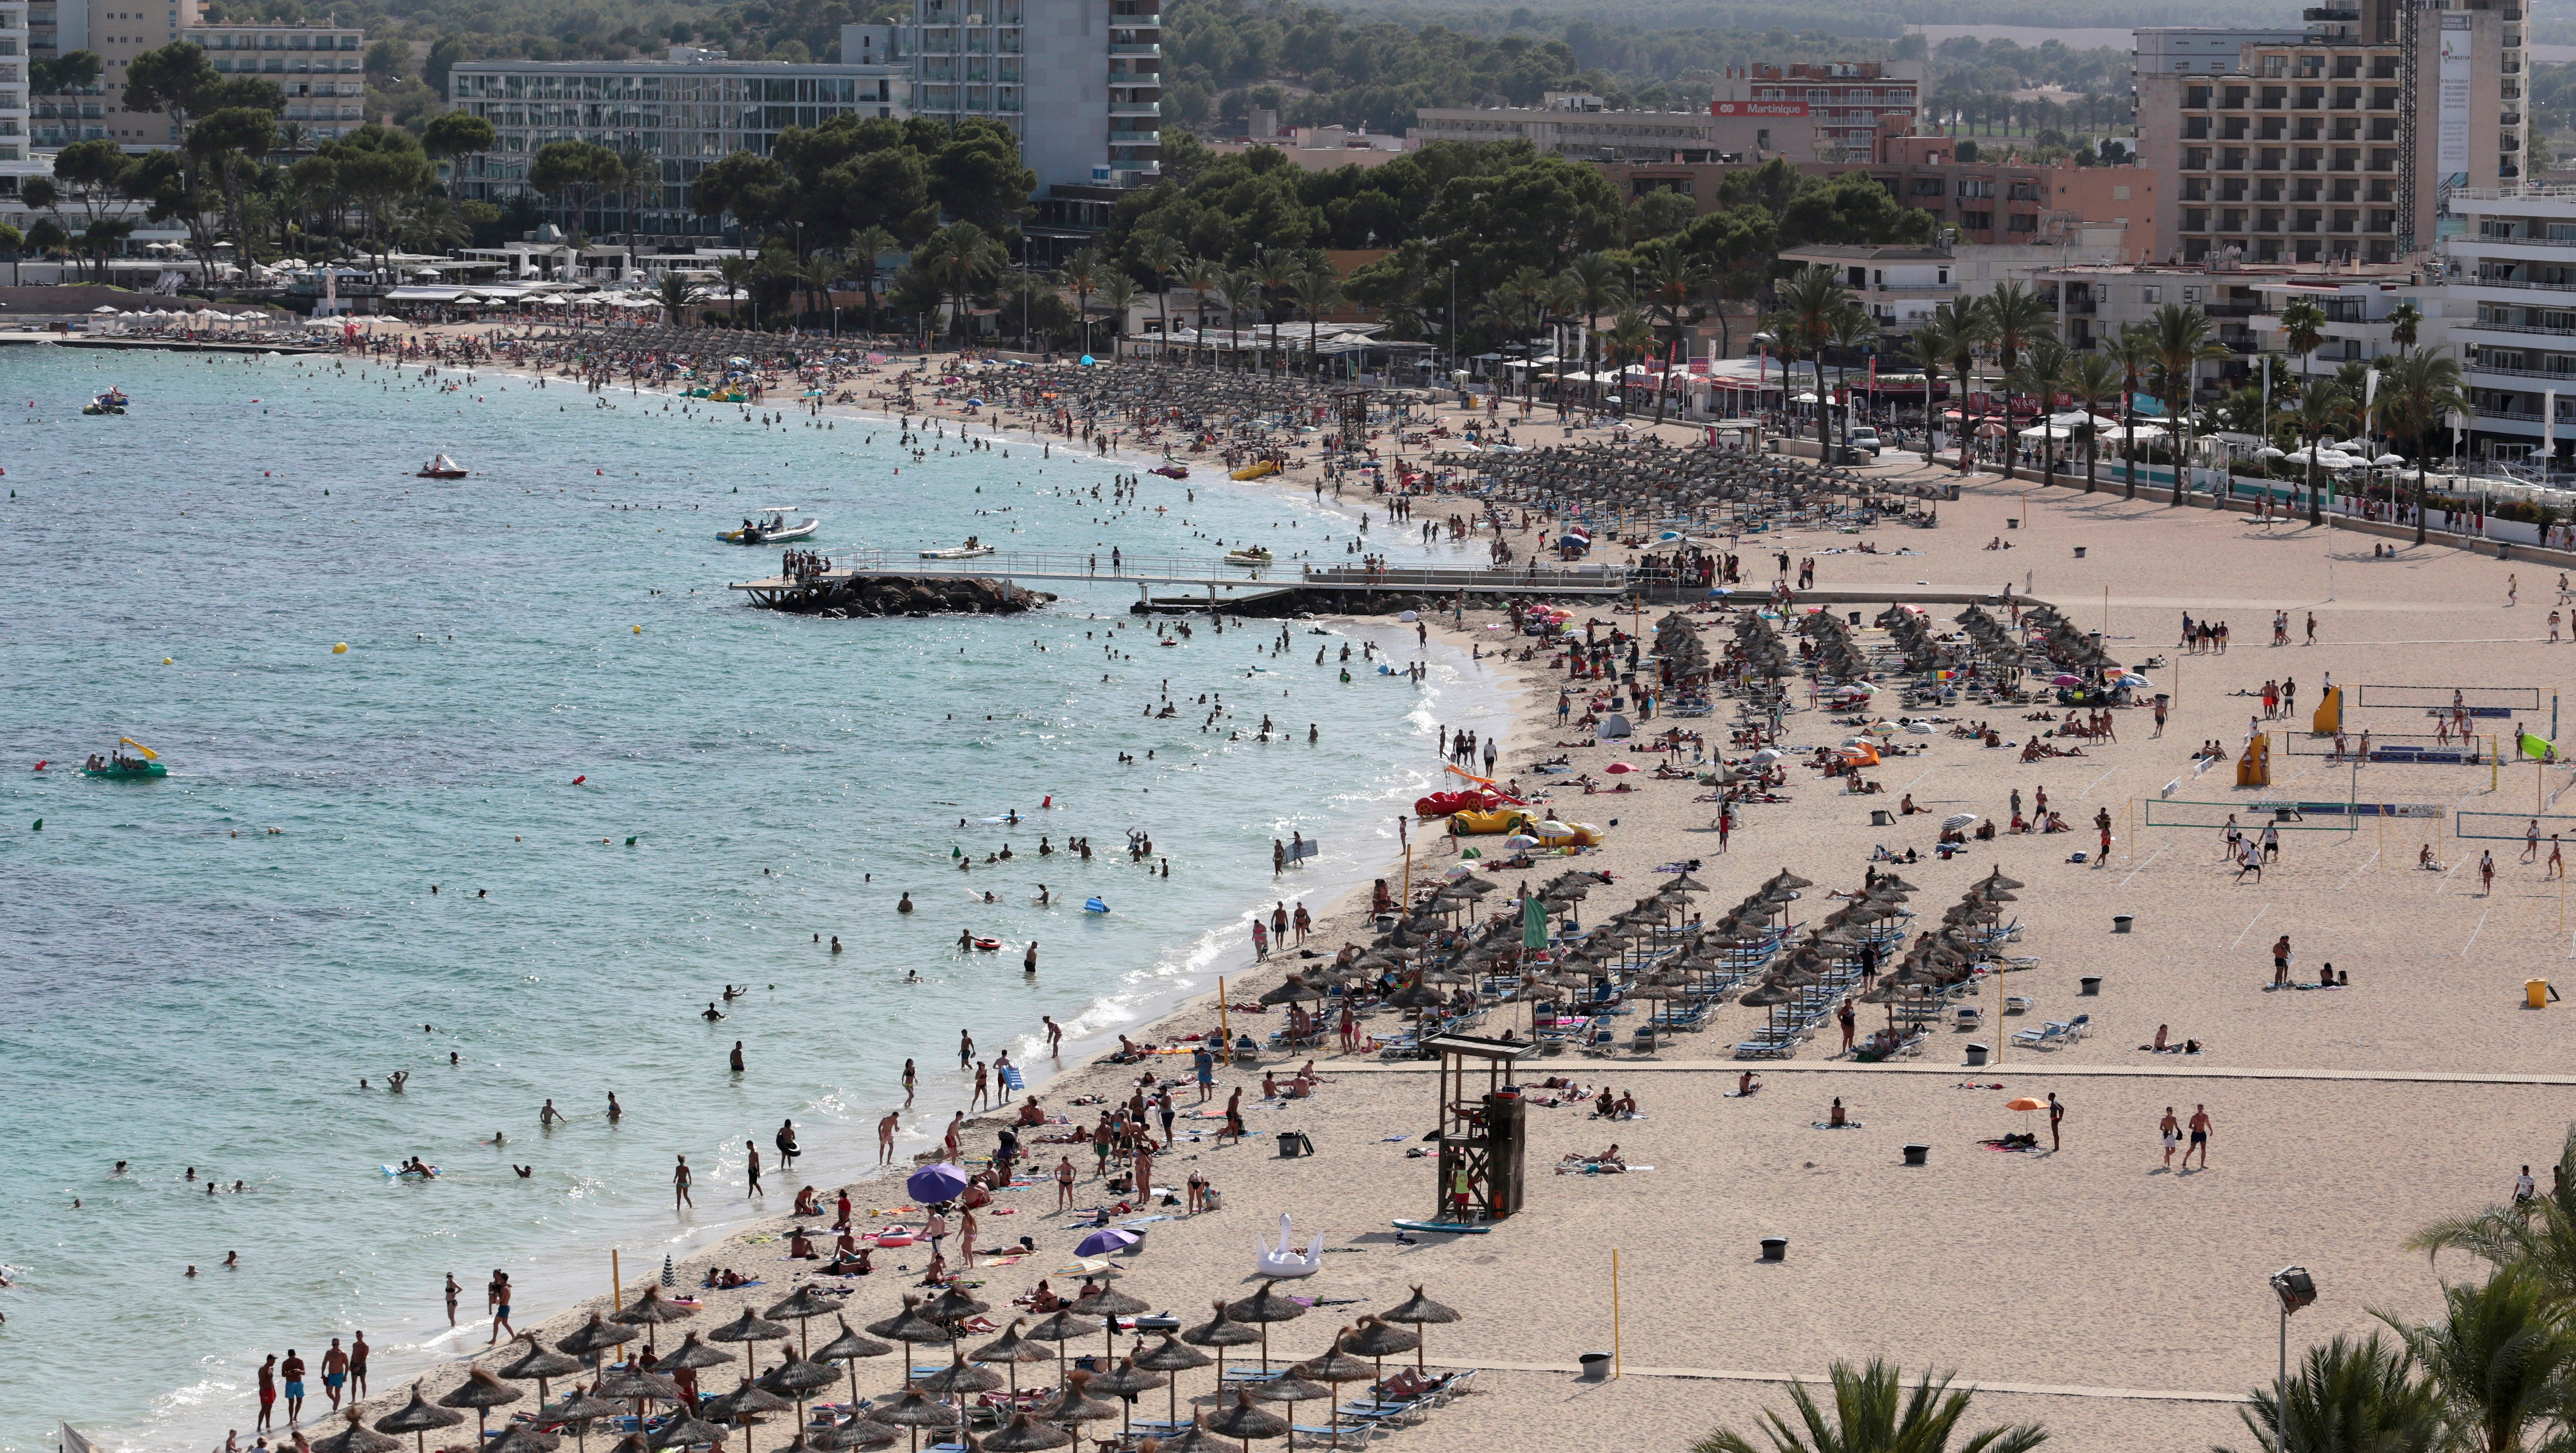 Tourists sunbathe and swim at the beach of Magaluf on the island of Mallorca, Spain, August 19, 2017.